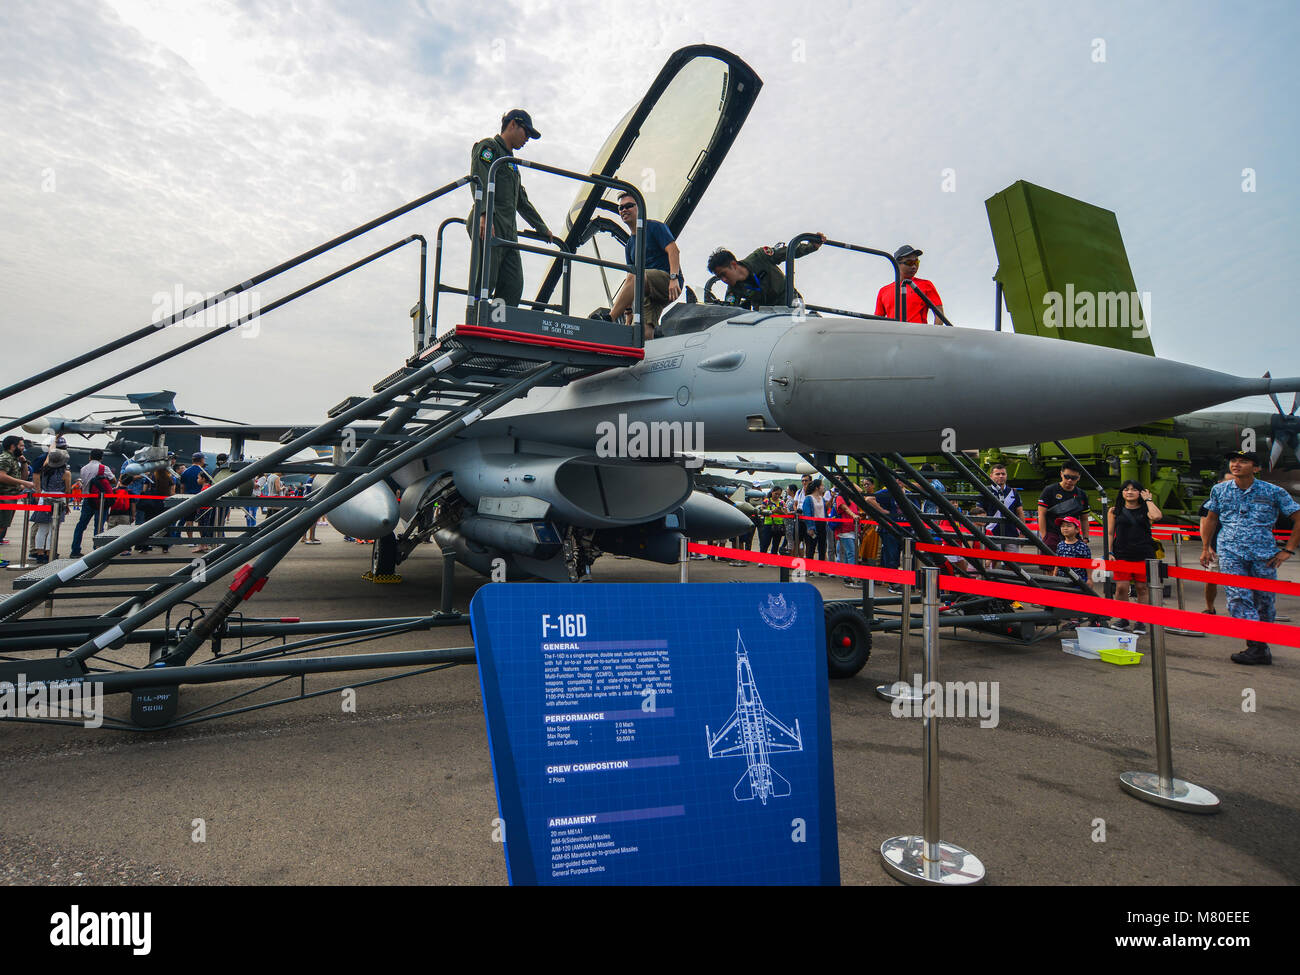 Singapore - Feb 10, 2018. A Lockheed Martin F-16D Fighting Falcon fighter aircraft of Singapore Air Force (RSAF) - Stock Image